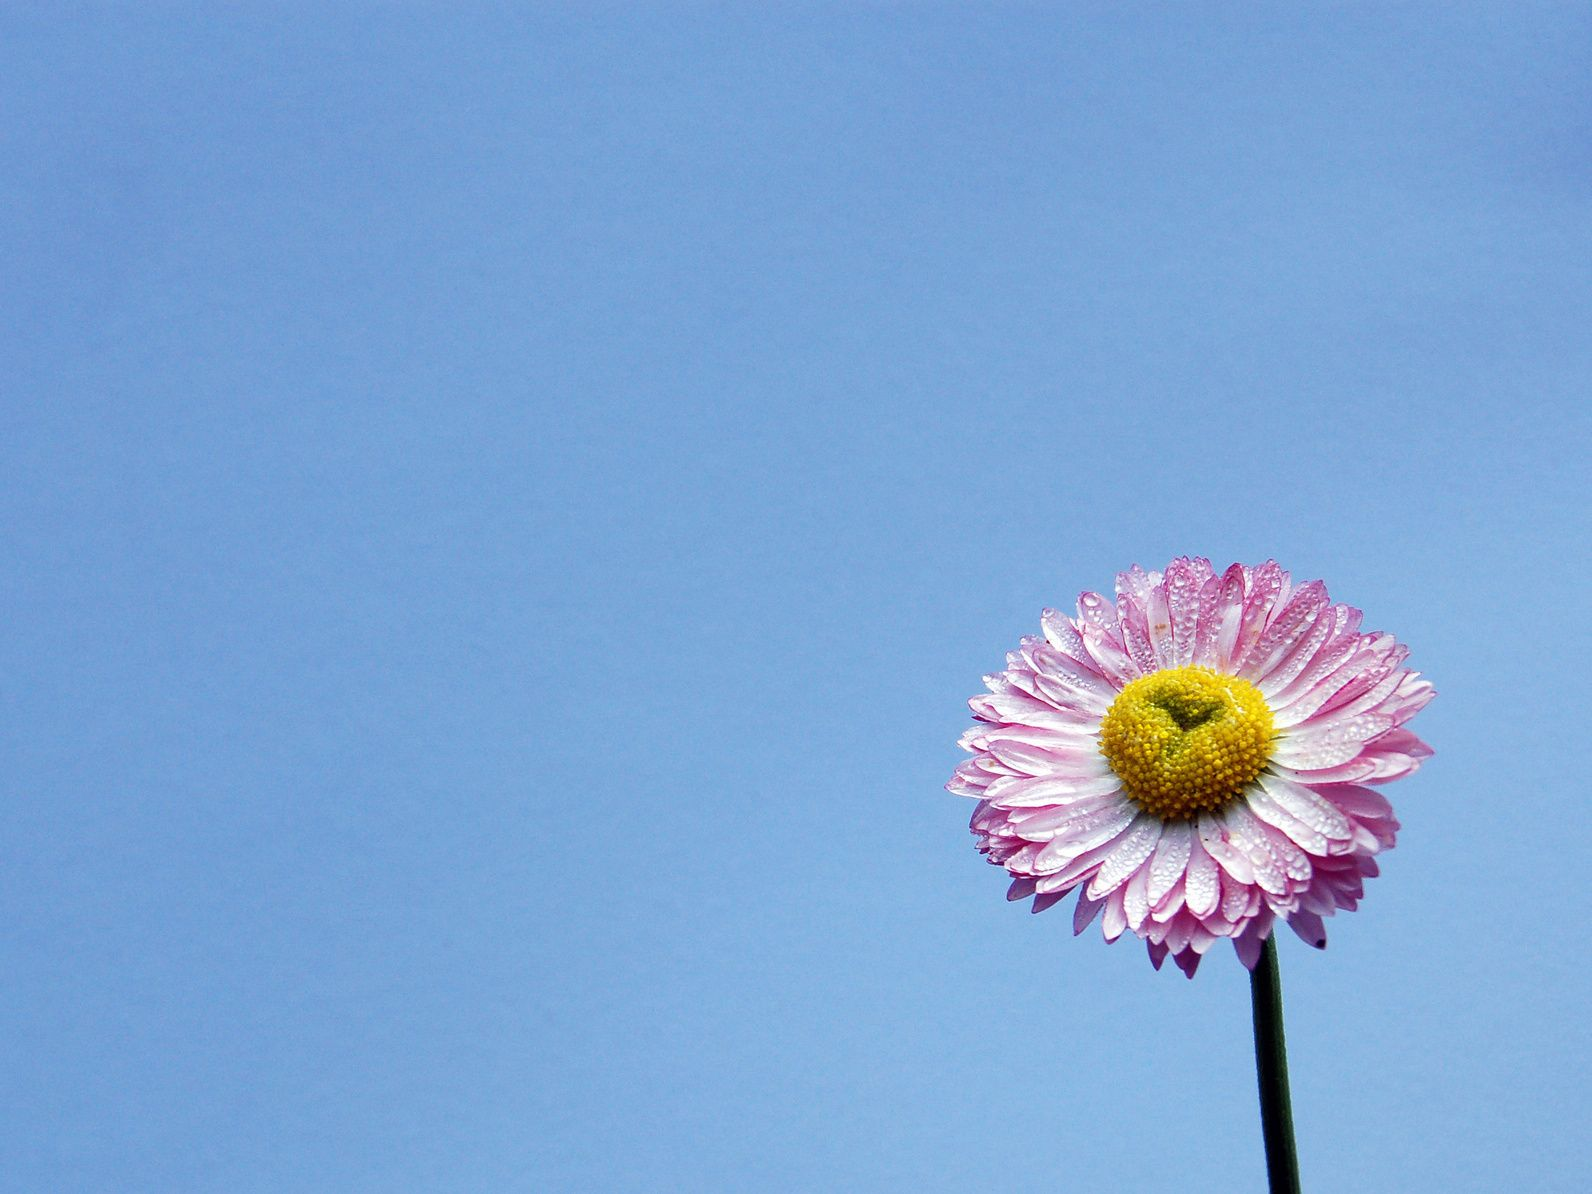 Photo of the purple and white flower with a yellow center against a bright blue background